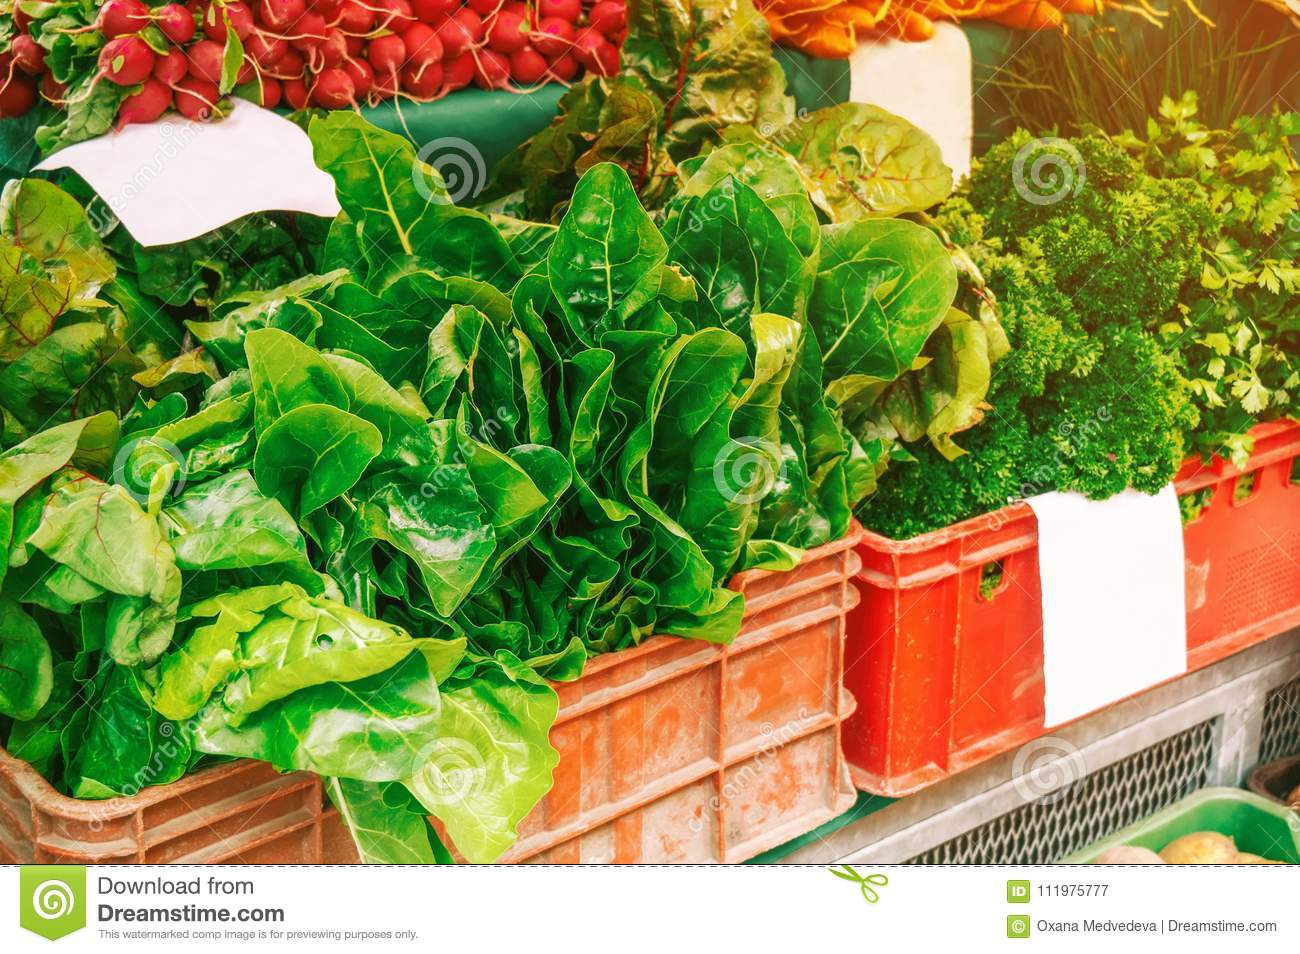 Production and sale of agricultural products: a selection of sites